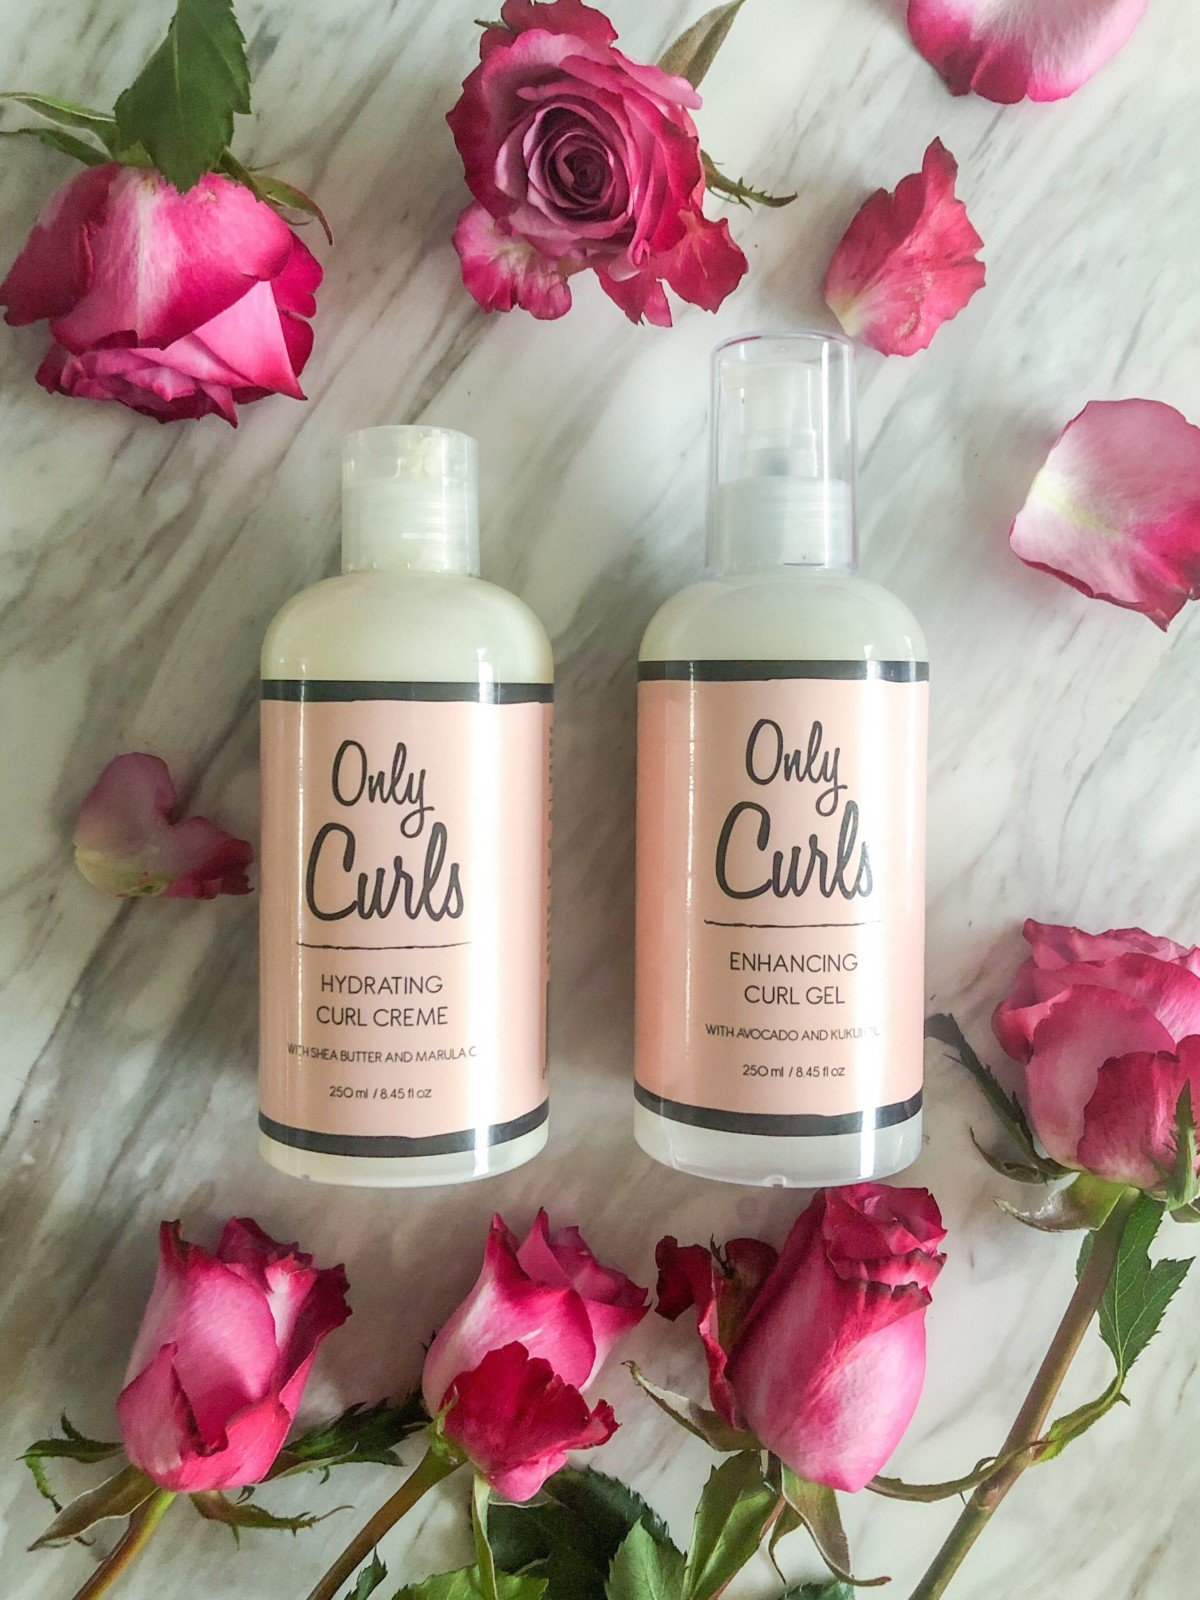 Vegan Only curls products with roses for the curly girl method